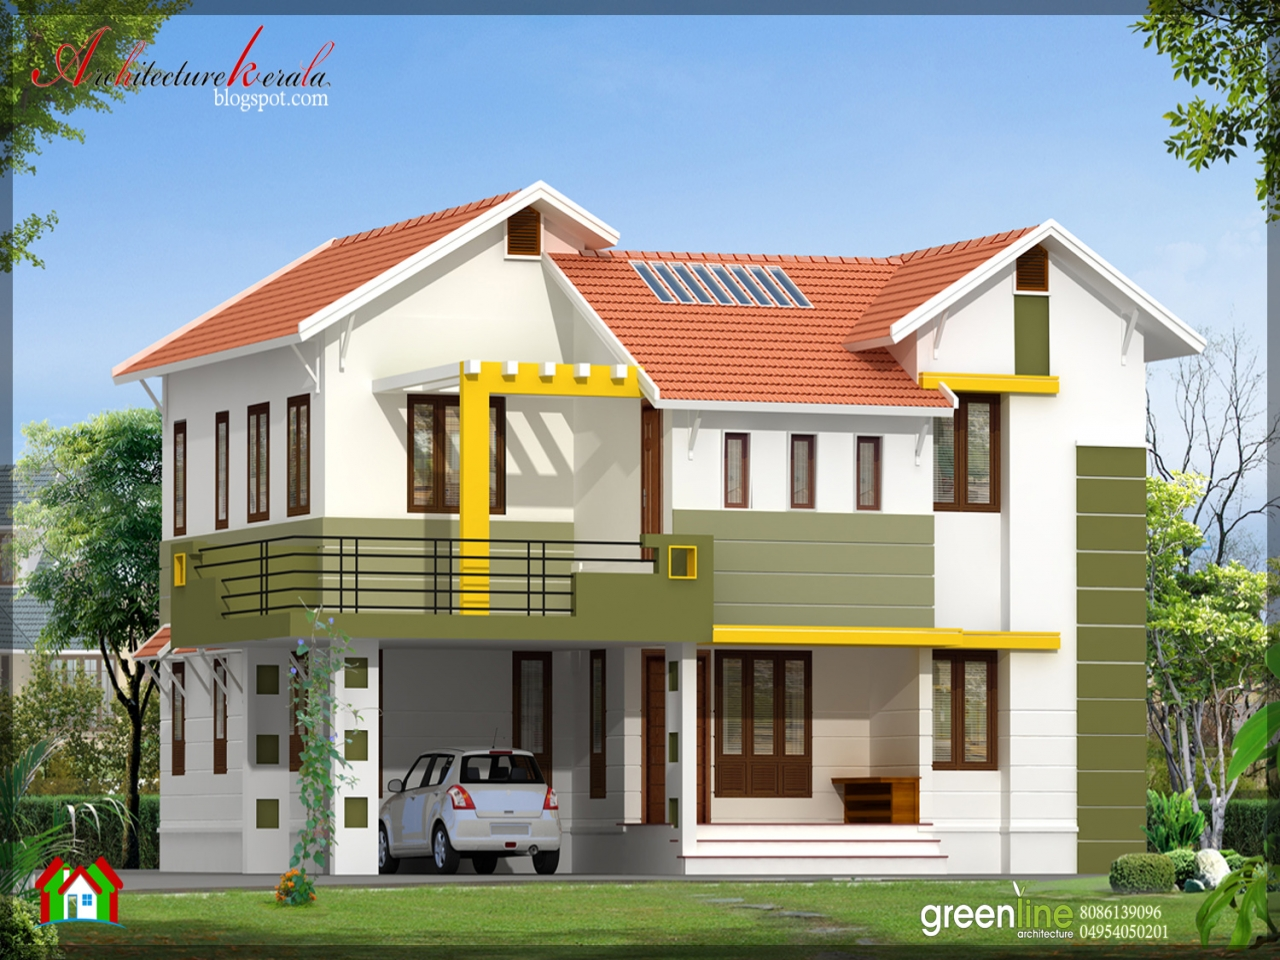 Simple modern house designs simple house design in india for Modern indian house plans